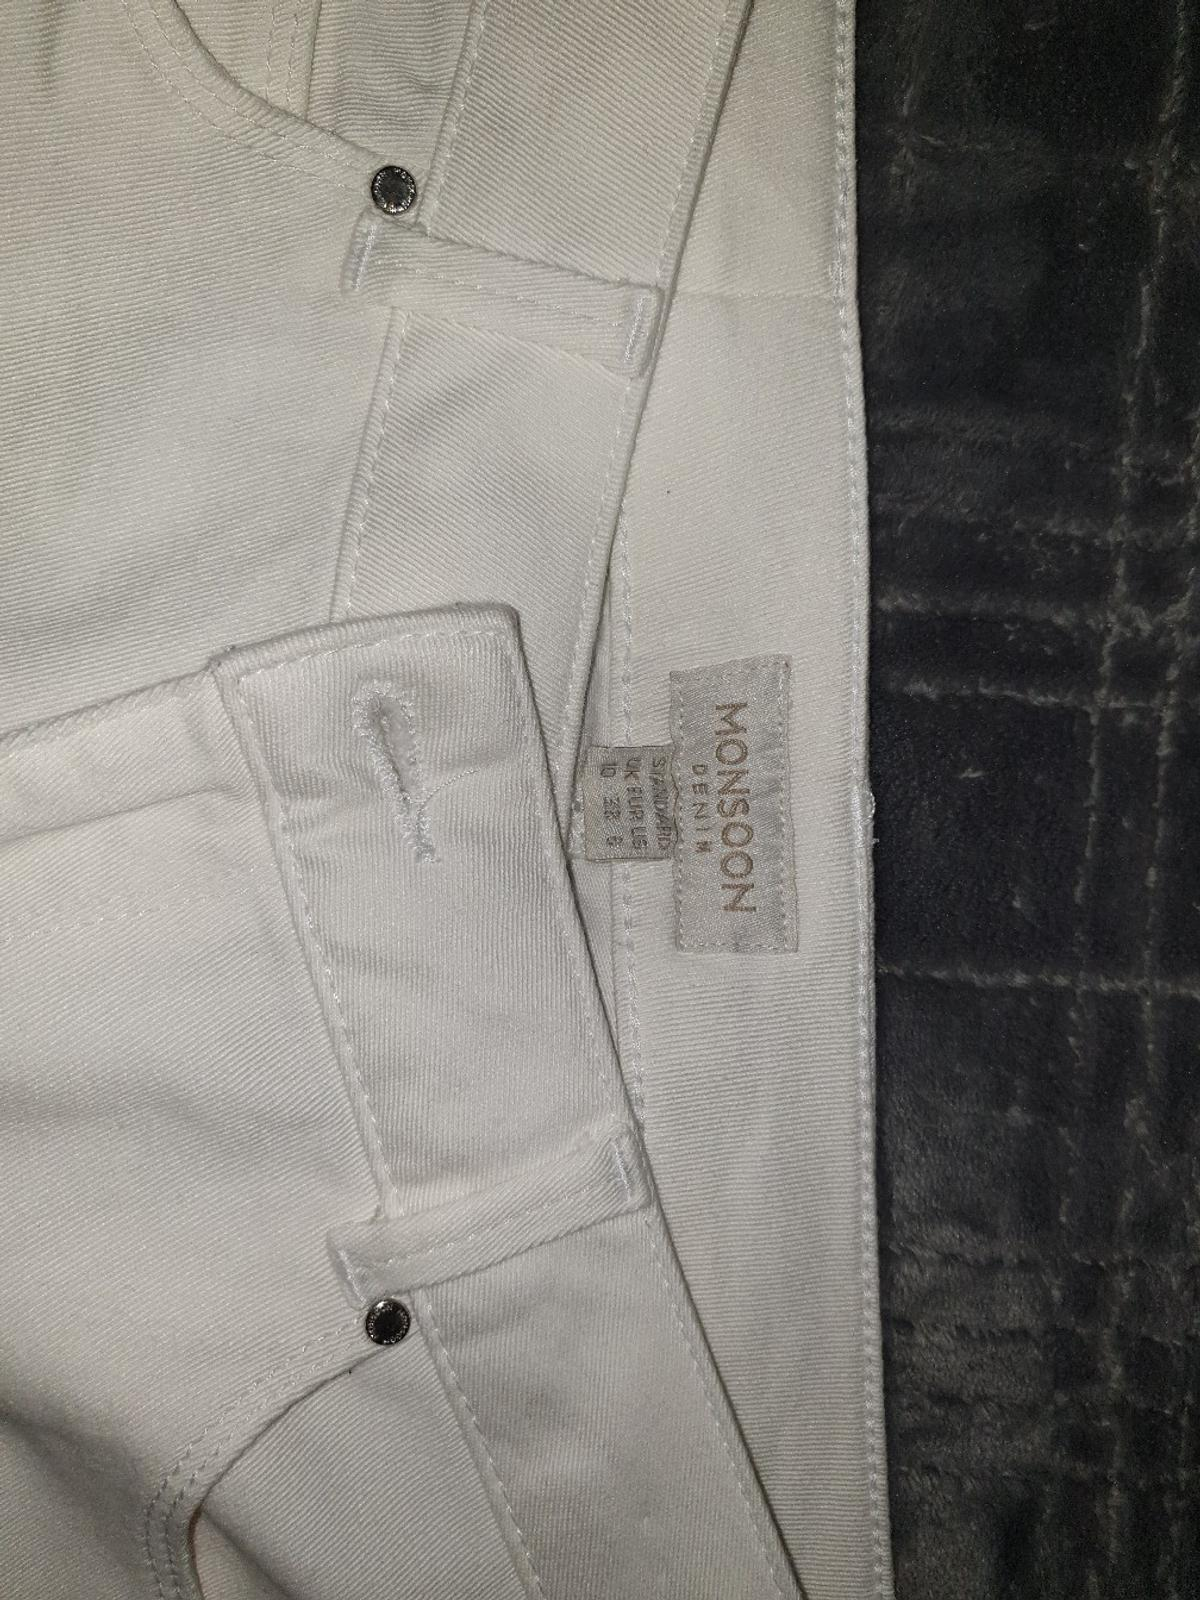 excellent condition no marks,  no stains collection only from Ha1